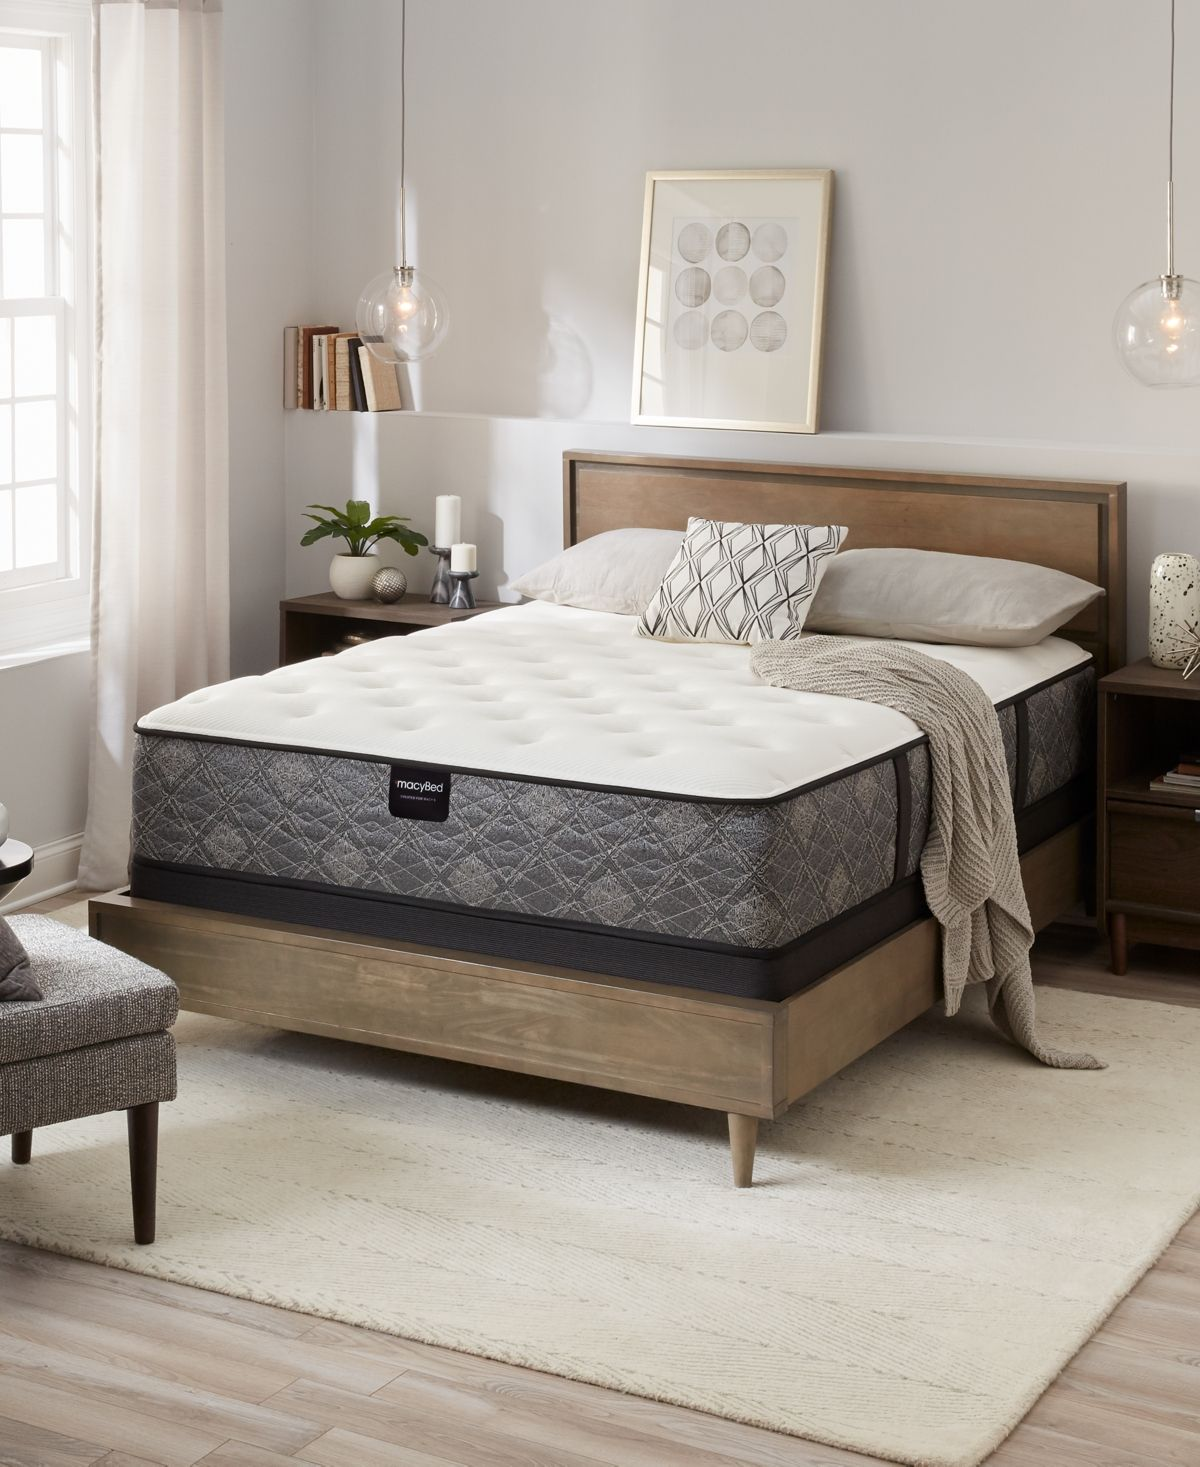 MacyBed by Serta Elite 13 in 2020 Mattress sets, Firm